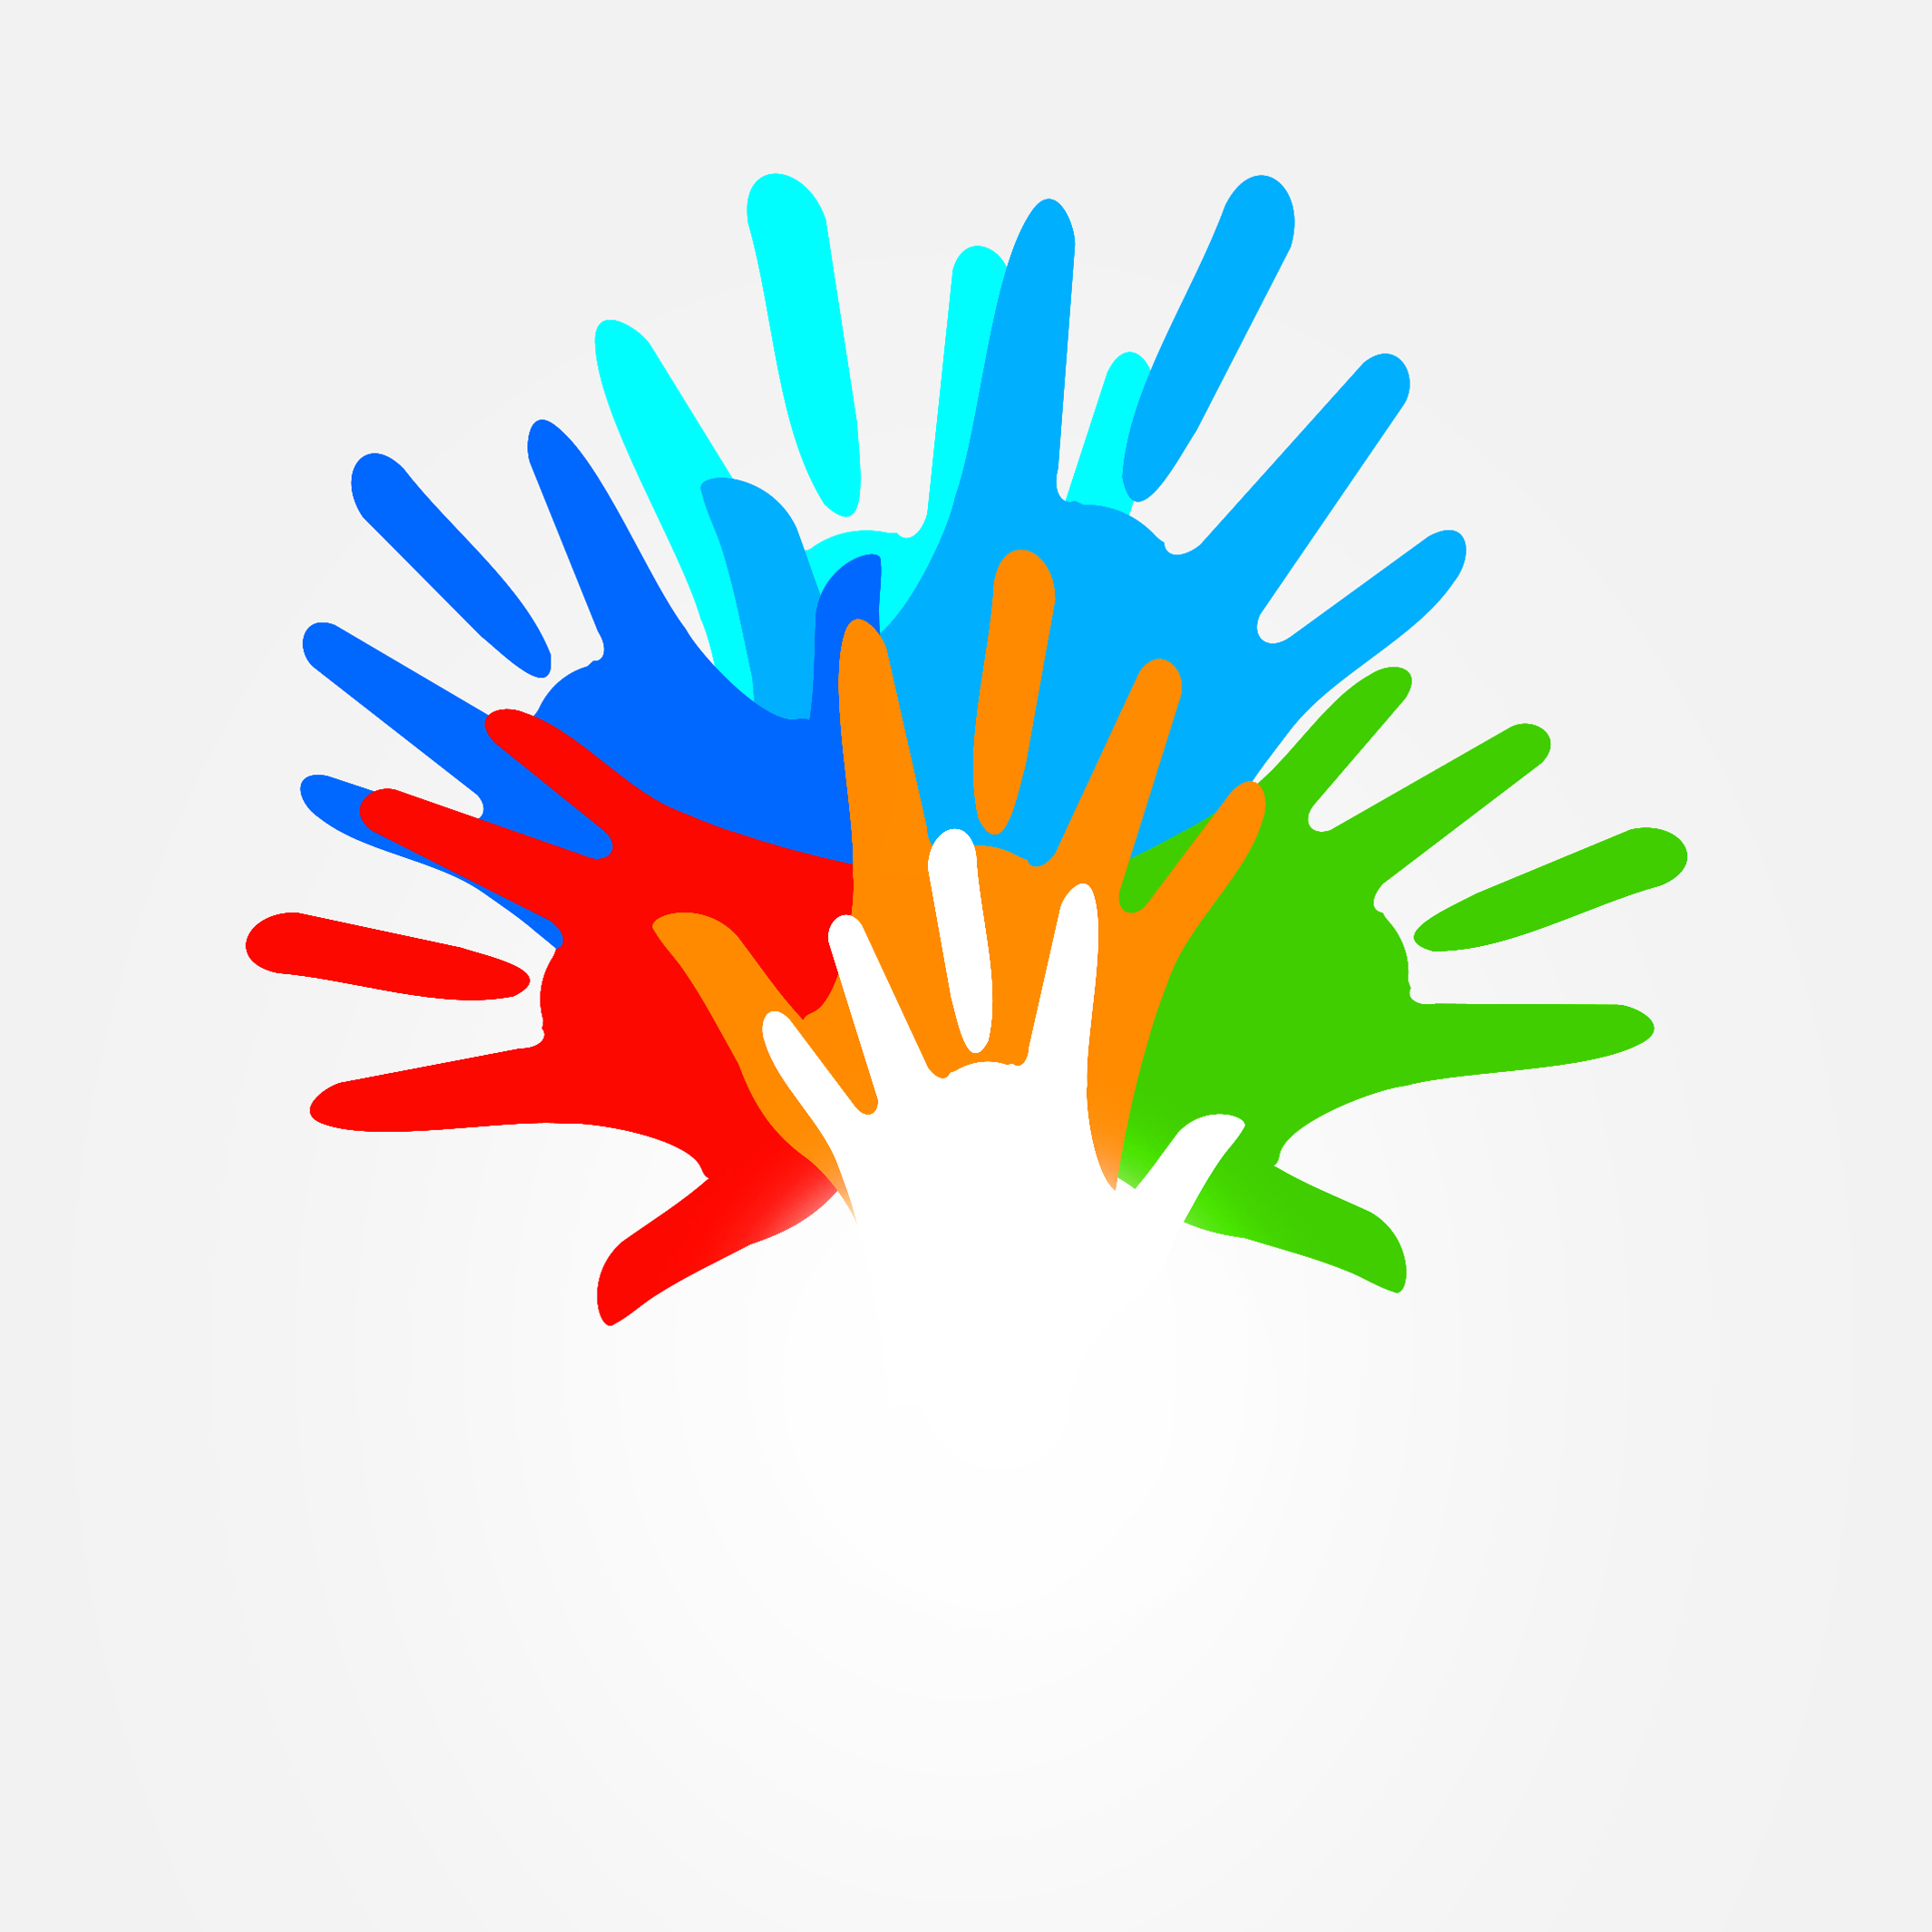 Hands united - team - friendship - support - family photo